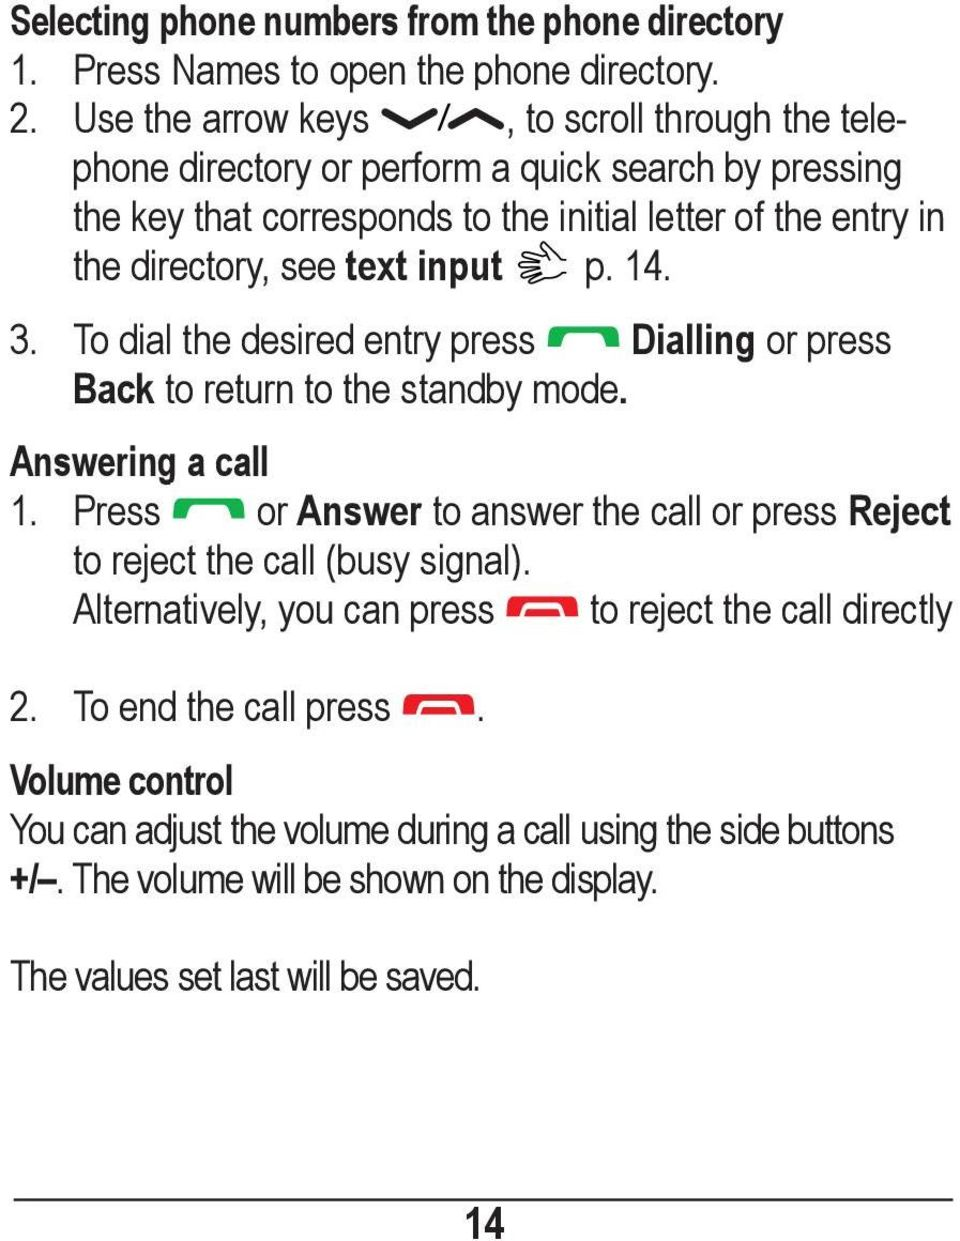 text input p. 14. 3. To dial the desired entry press Dialling or press Back to return to the standby mode. Answering a call 1.